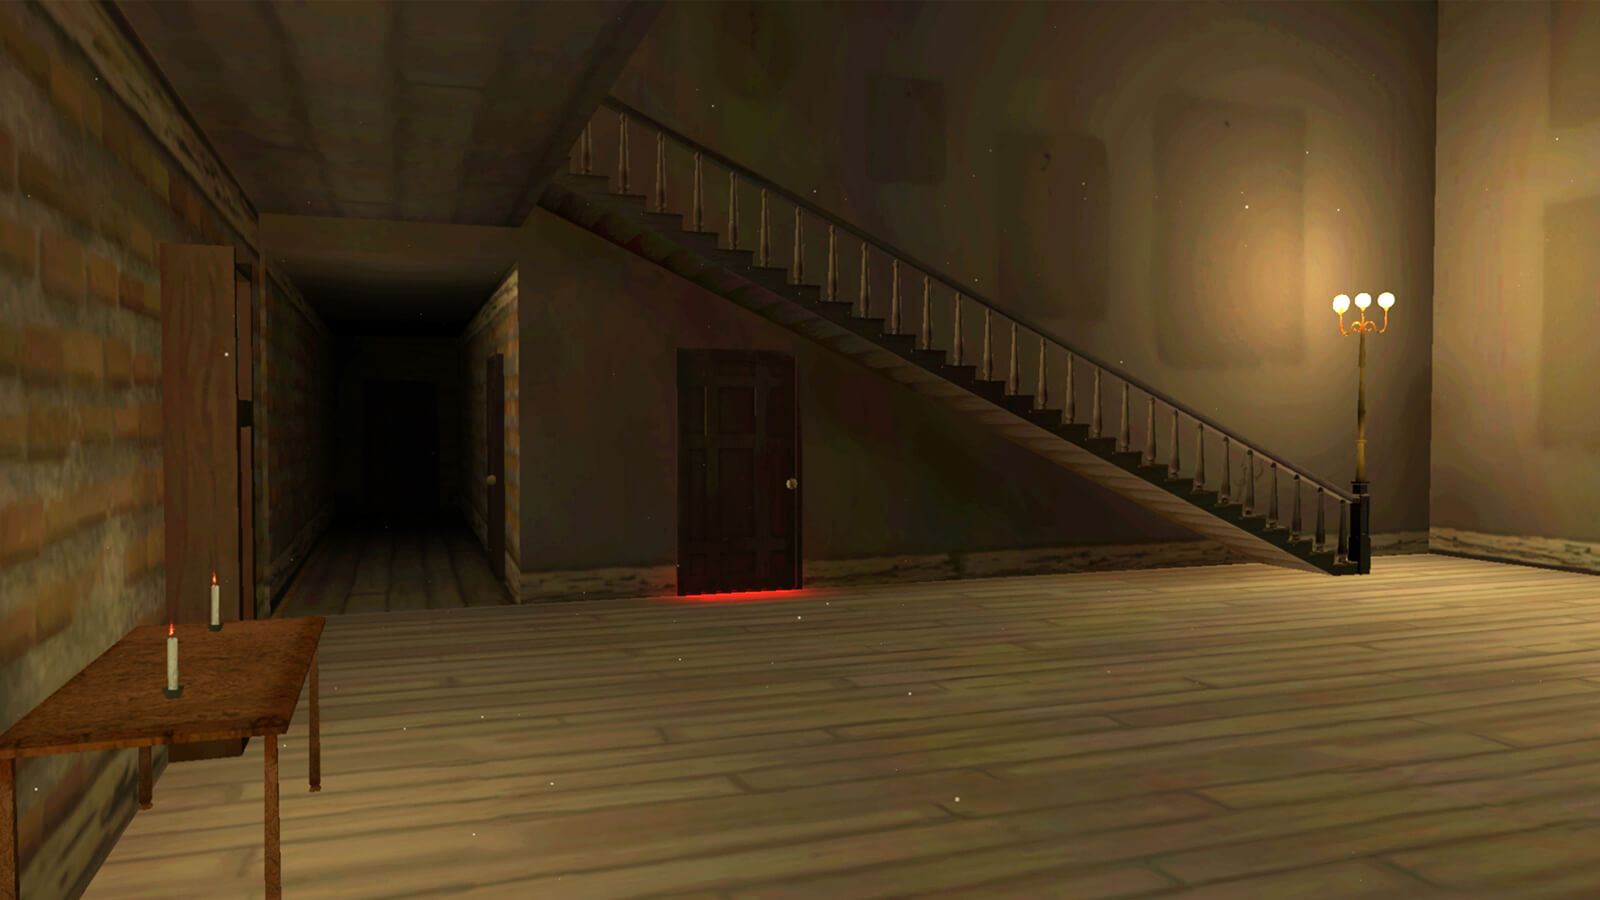 A large empty room with marks where paintings used to hang. Red light emanates from the bottom of a closed door.